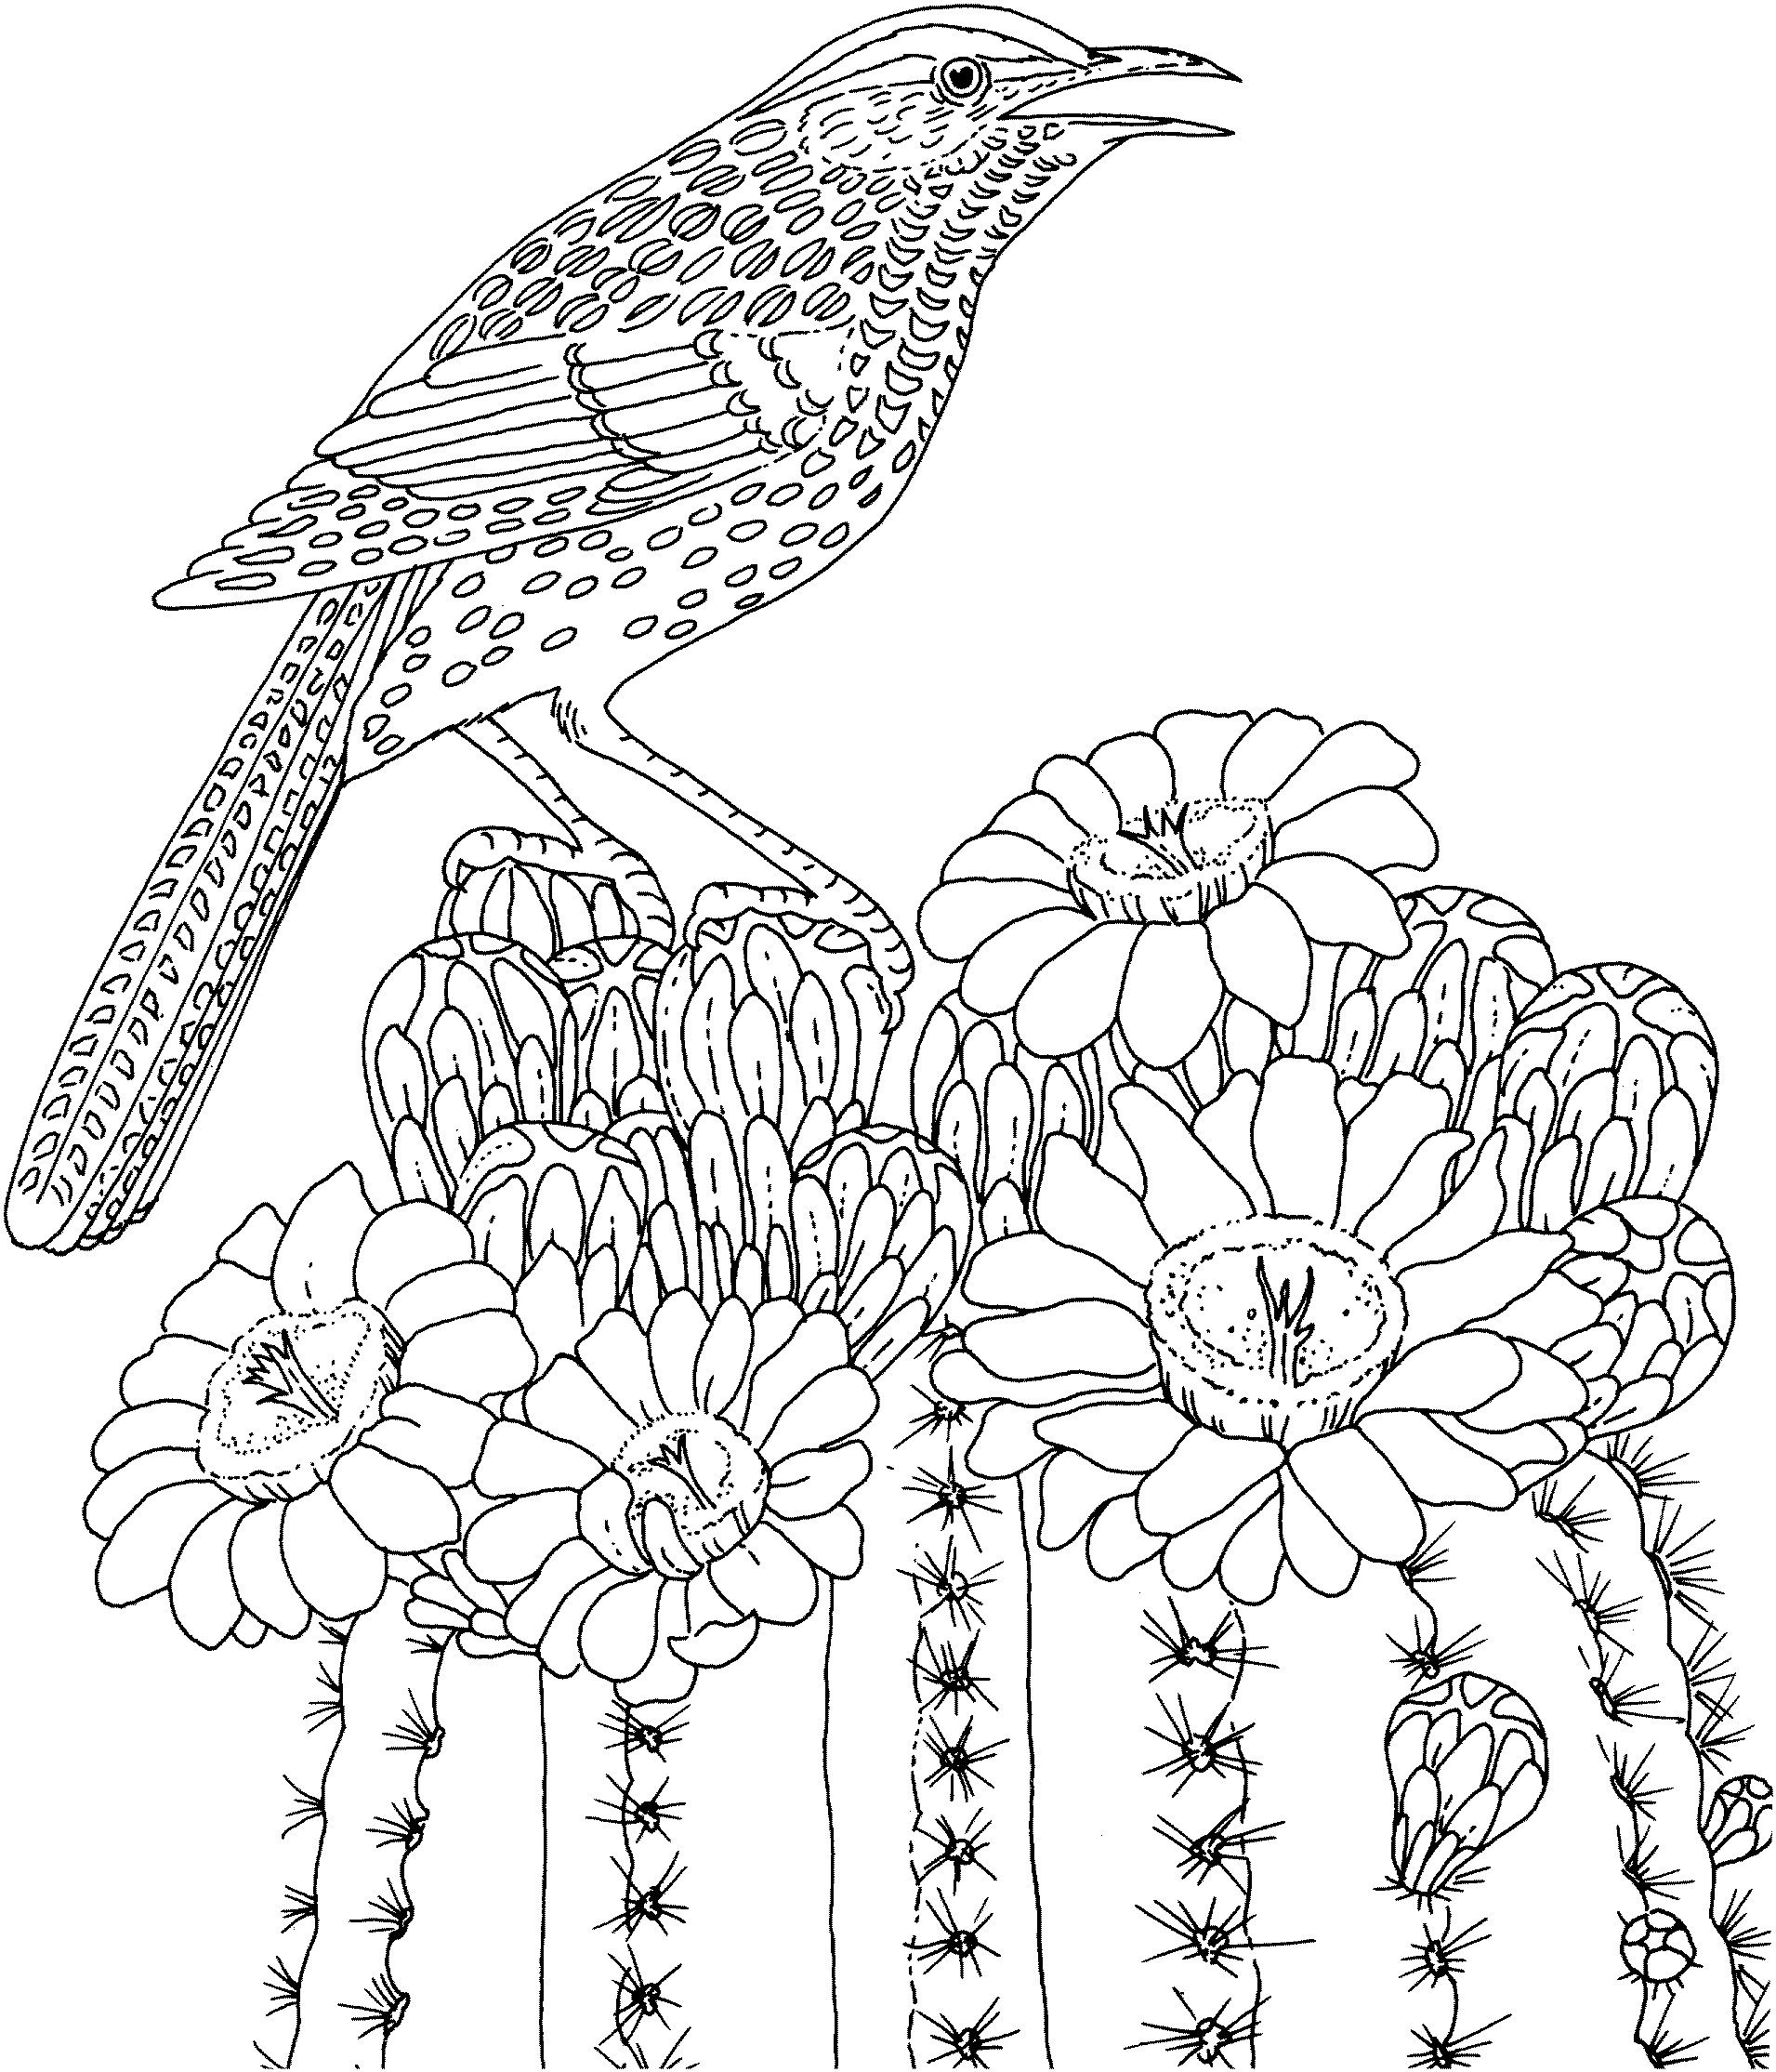 Ocean Coloring Pages Love To Color Description From Pinterest